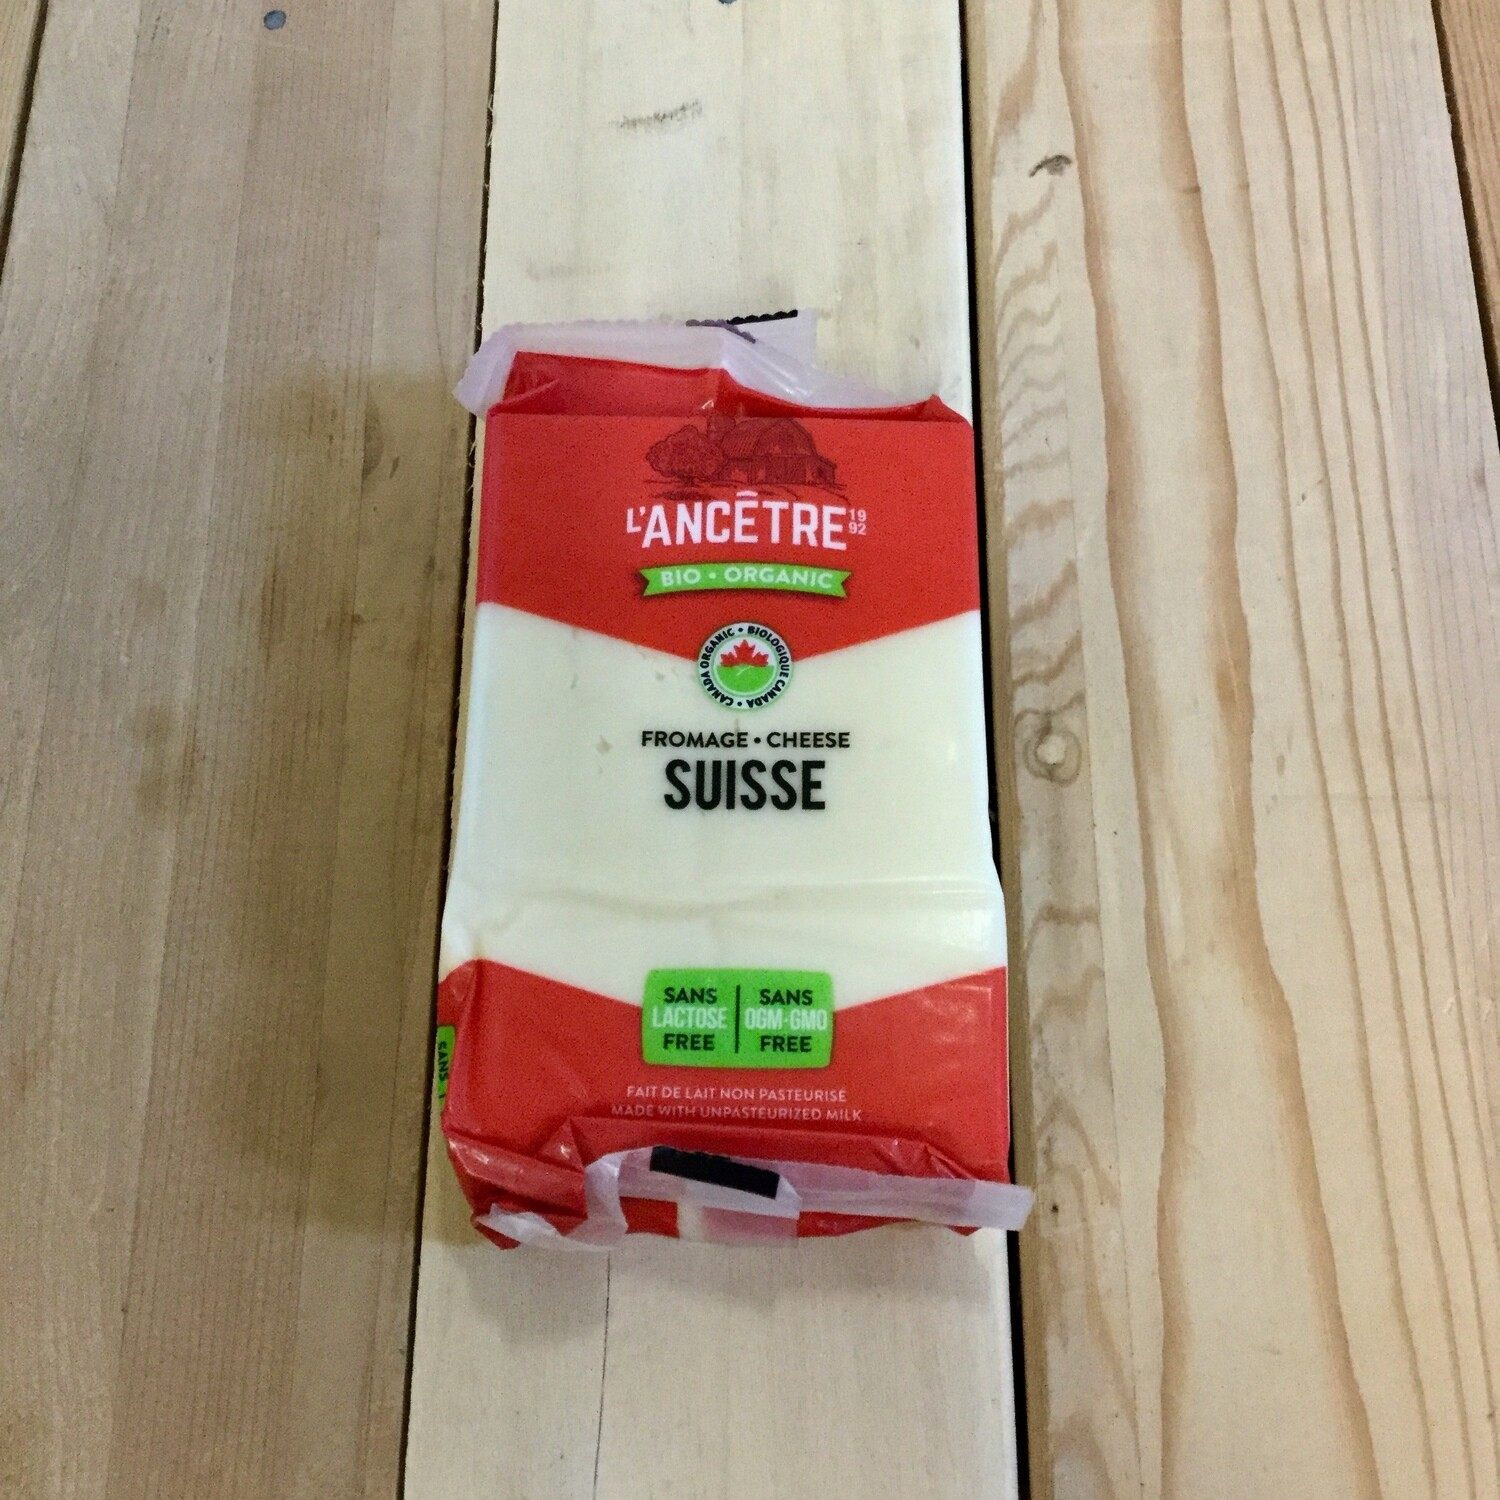 LANCETRE Swiss Cheese 325g